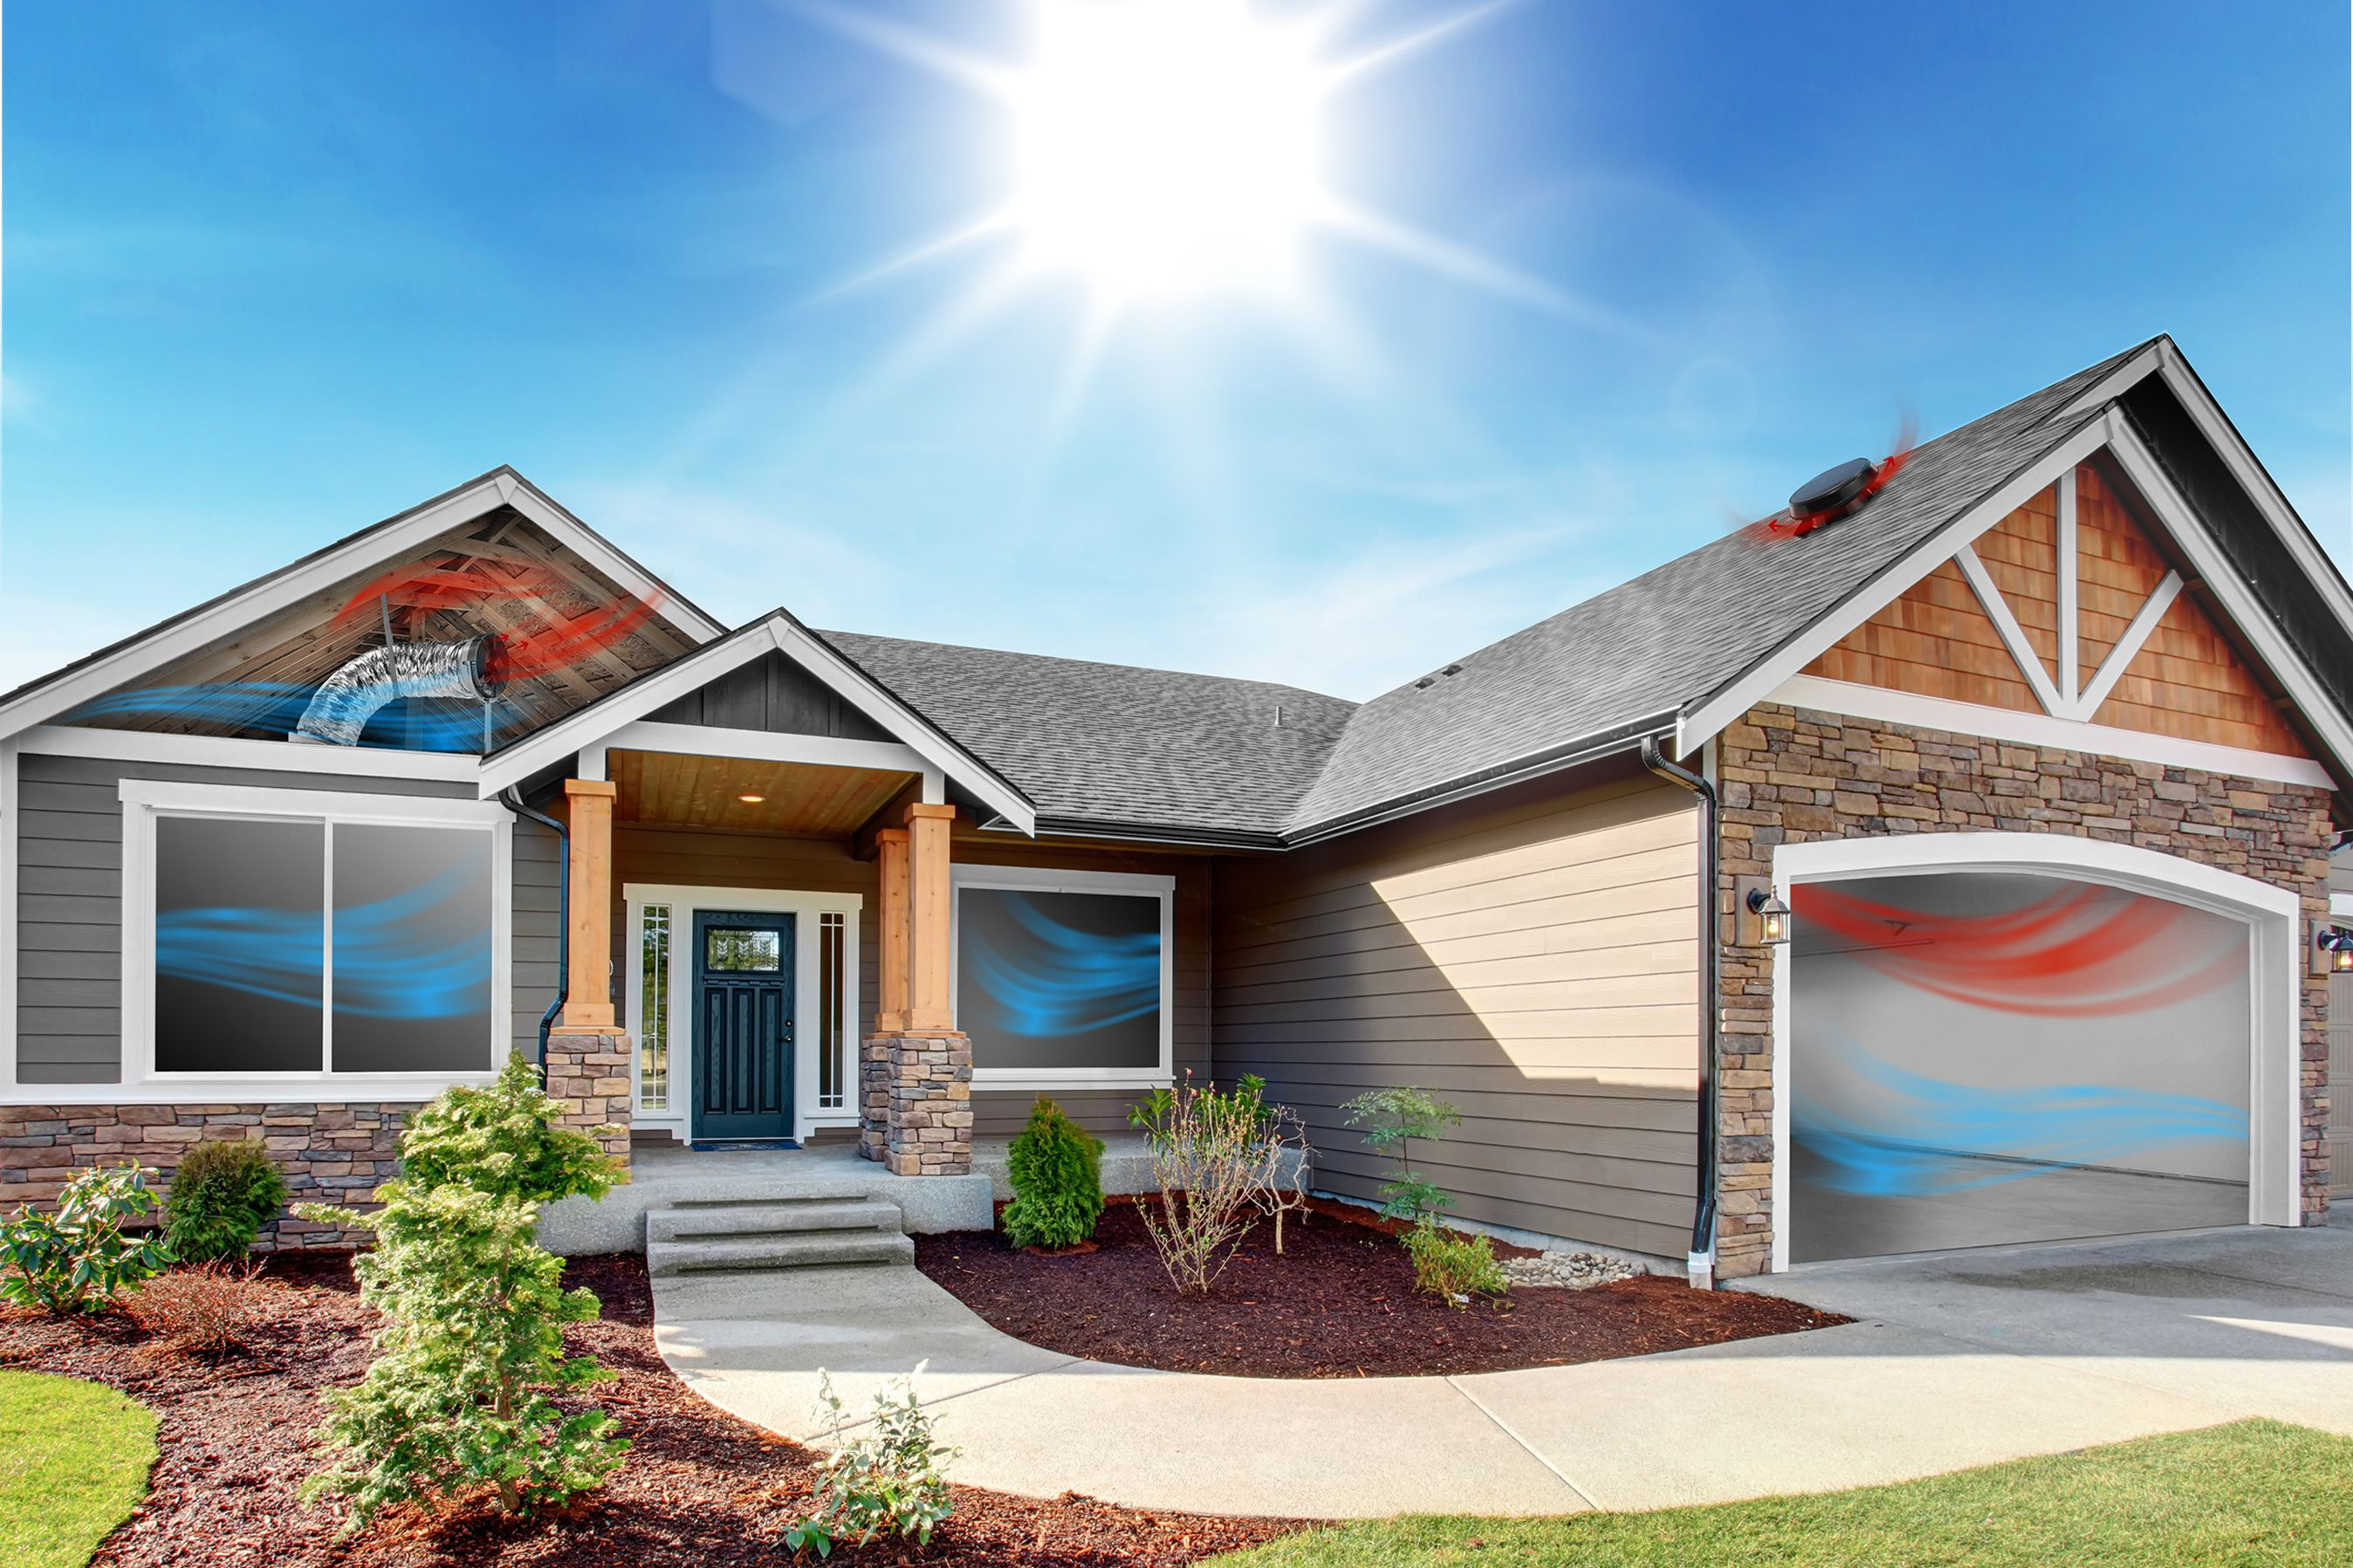 15 Tips for Higher Air Conditioning Performance